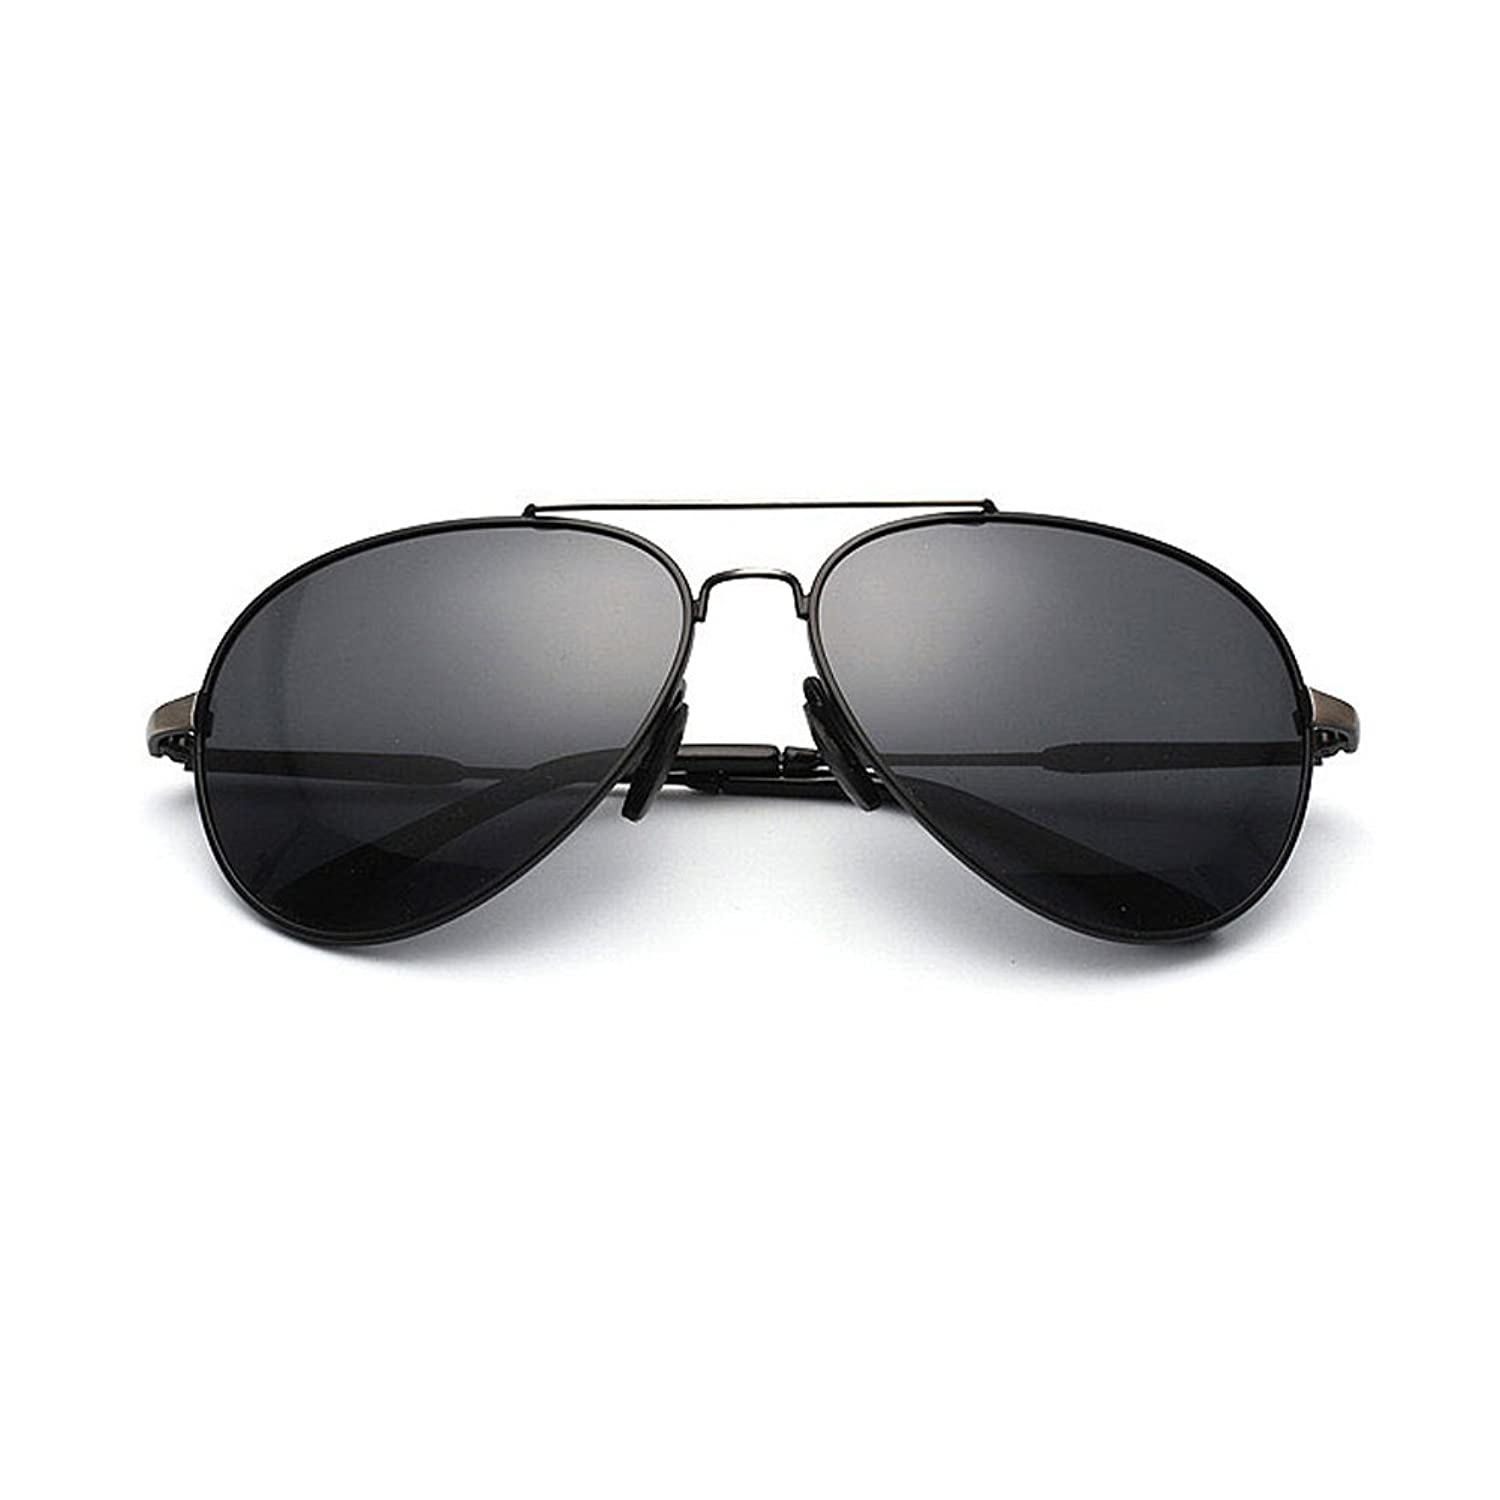 77ae8c0d310 low-cost Men s fashion ray ban polarized sunglasses UV protection color lens  bicycle summer eyewear